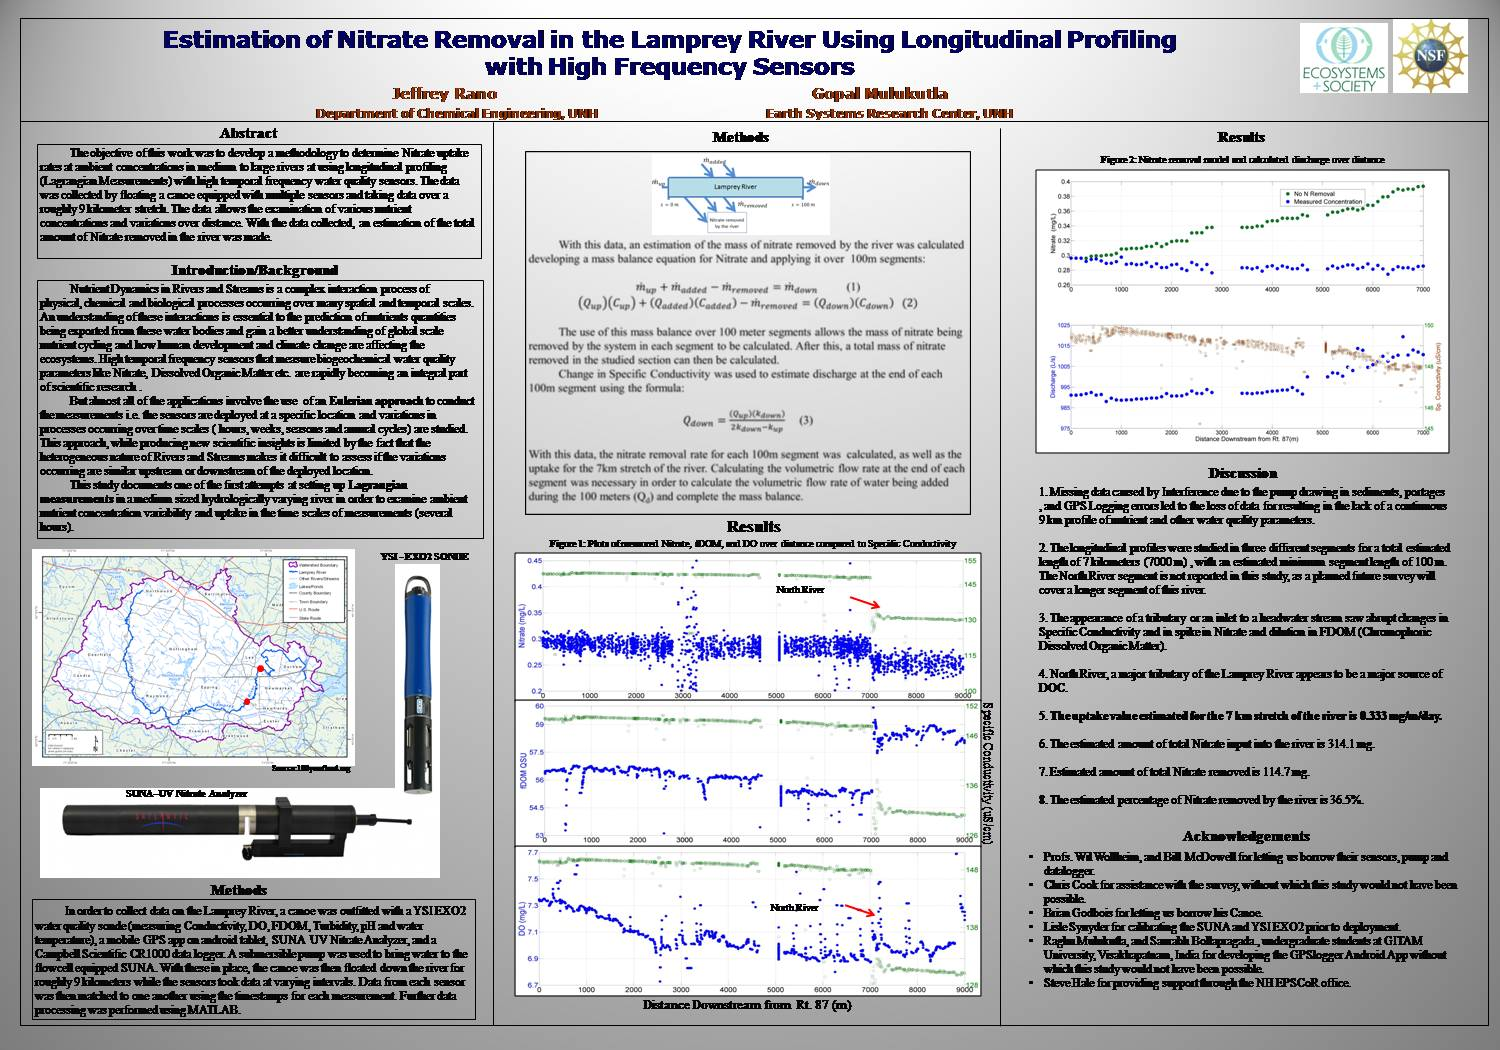 Estimation Of Nitrate Removal In The Lamprey River Using Longitudinal Profiling  by srhale